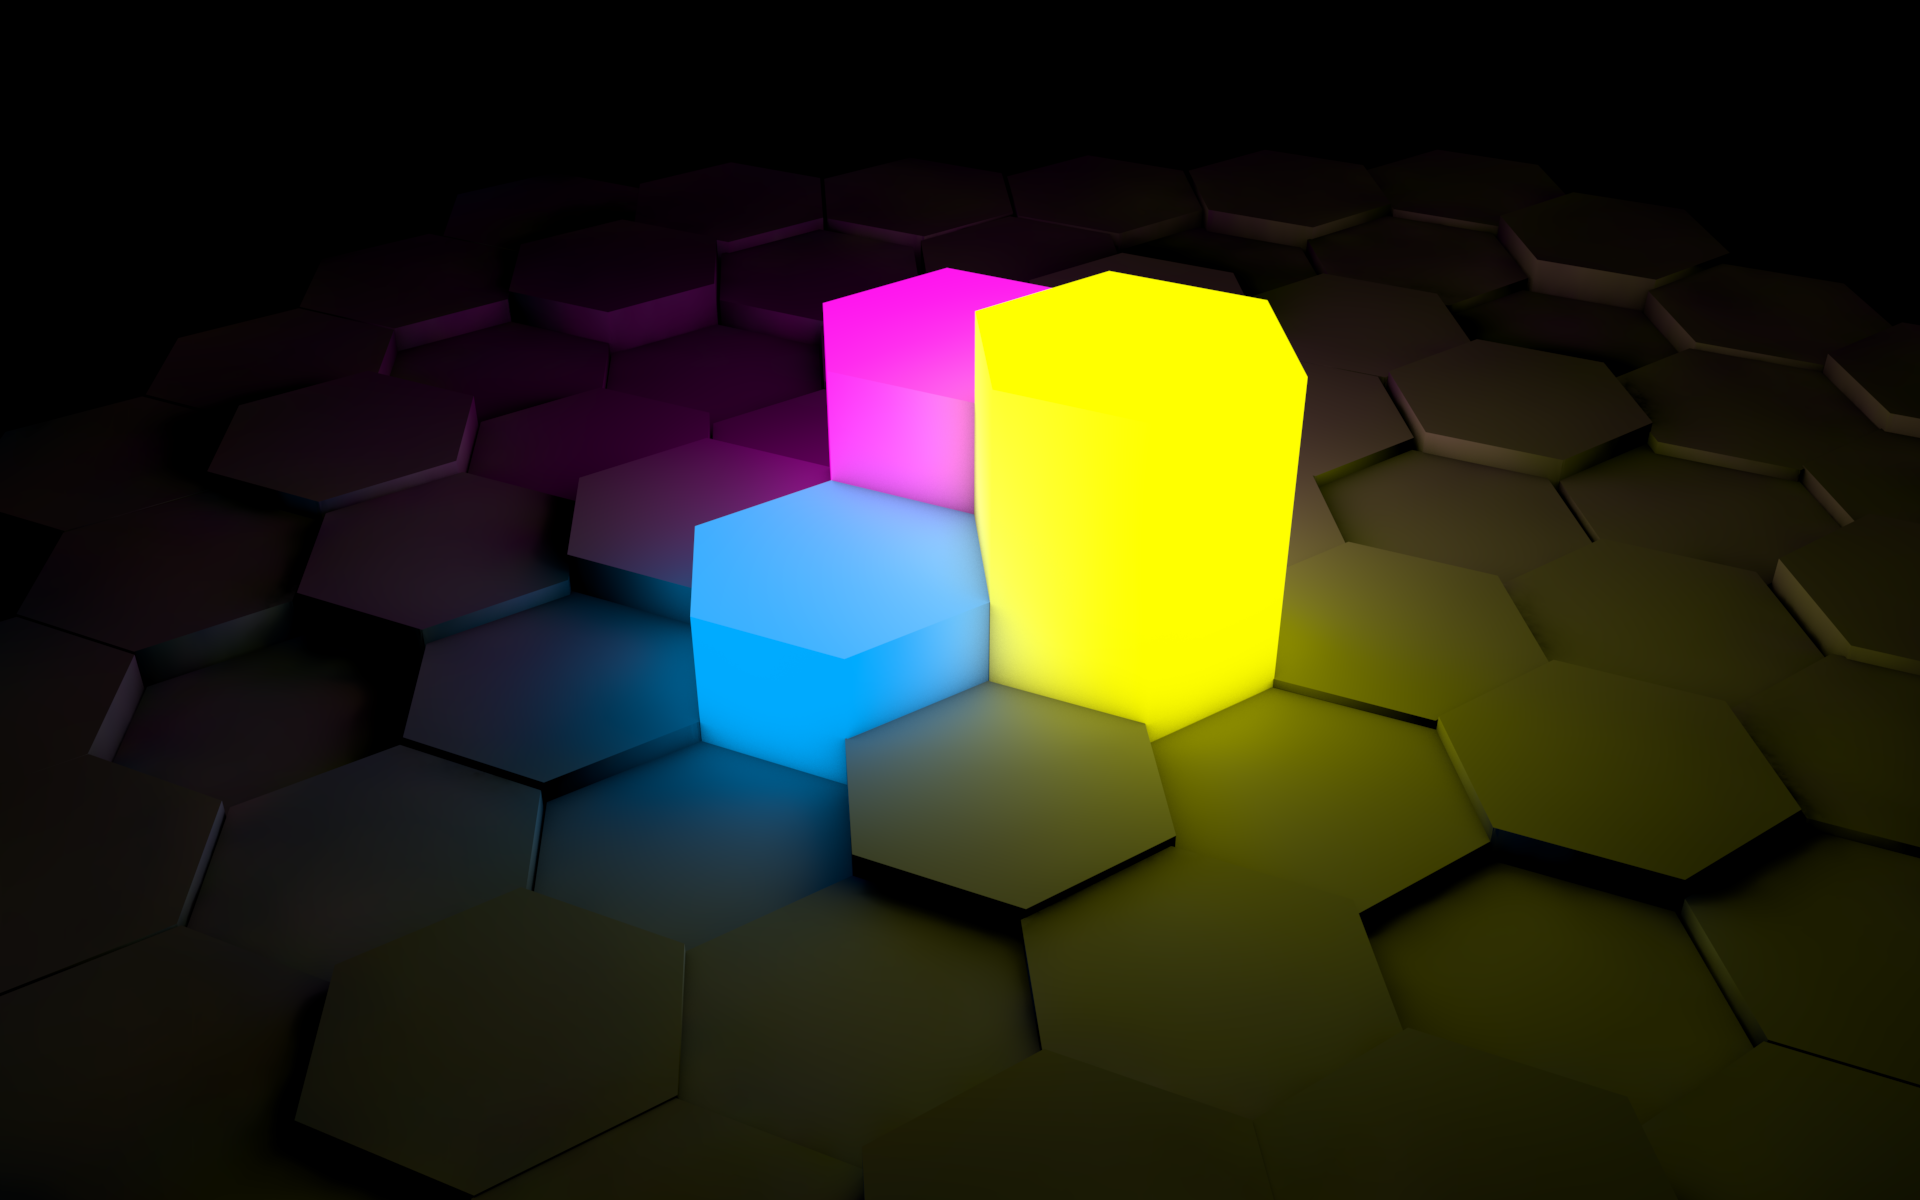 General 1920x1200 lights abstract minimalism hexagon digital art